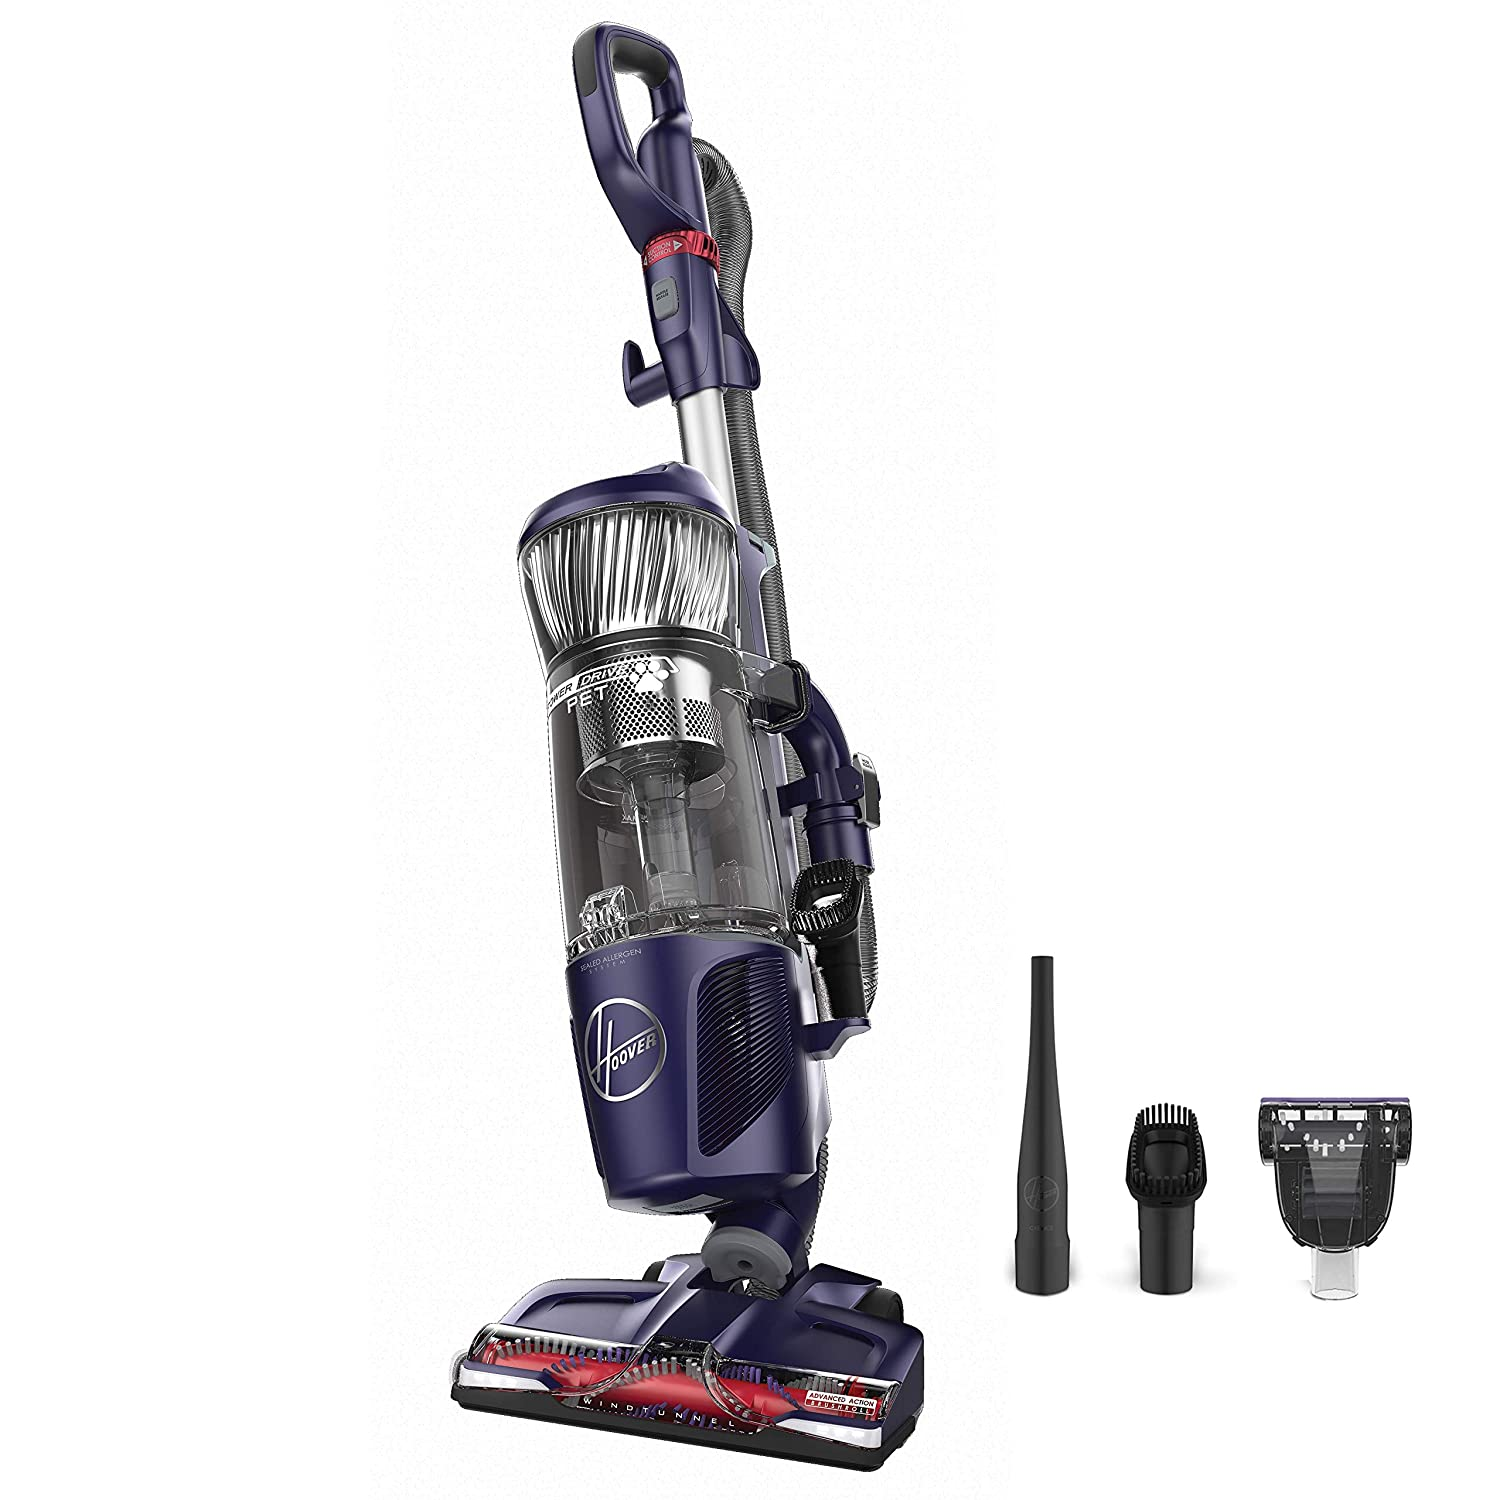 Hoover Power Drive Bagless Multi Floor Upright Vacuum Cleaner